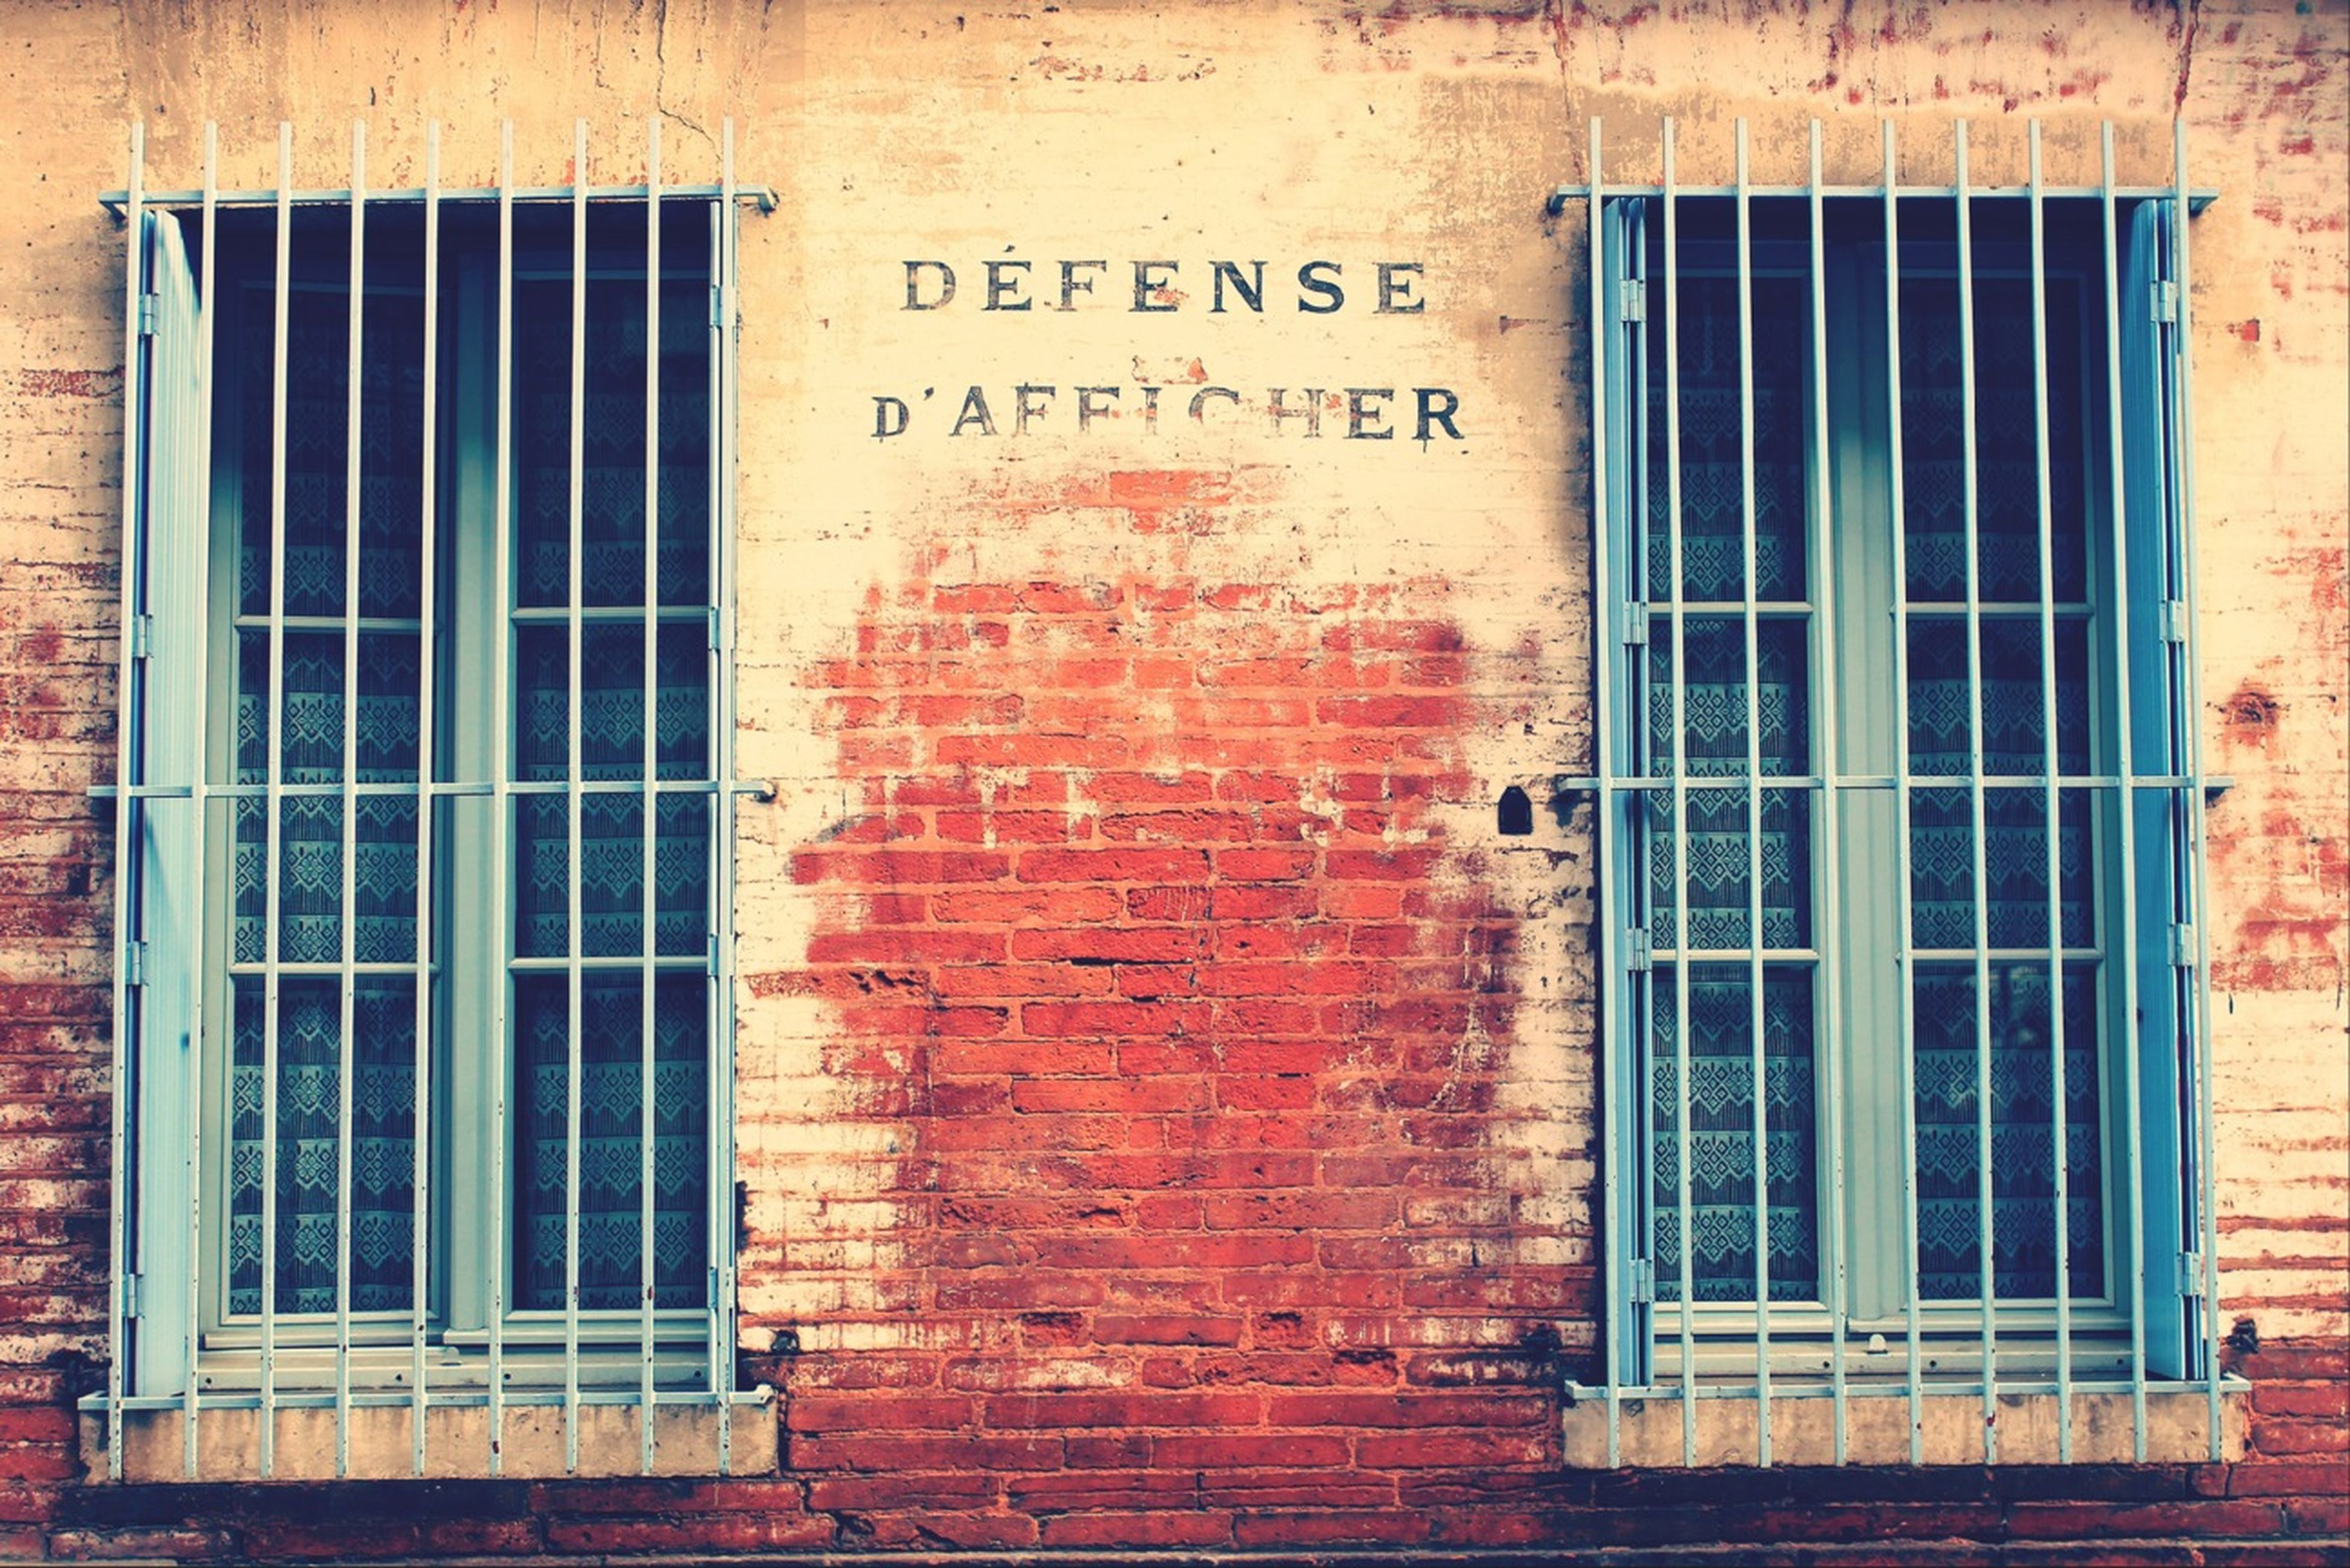 architecture, building exterior, built structure, window, closed, brick wall, door, wall - building feature, house, old, wall, weathered, residential structure, safety, text, building, day, outdoors, residential building, protection